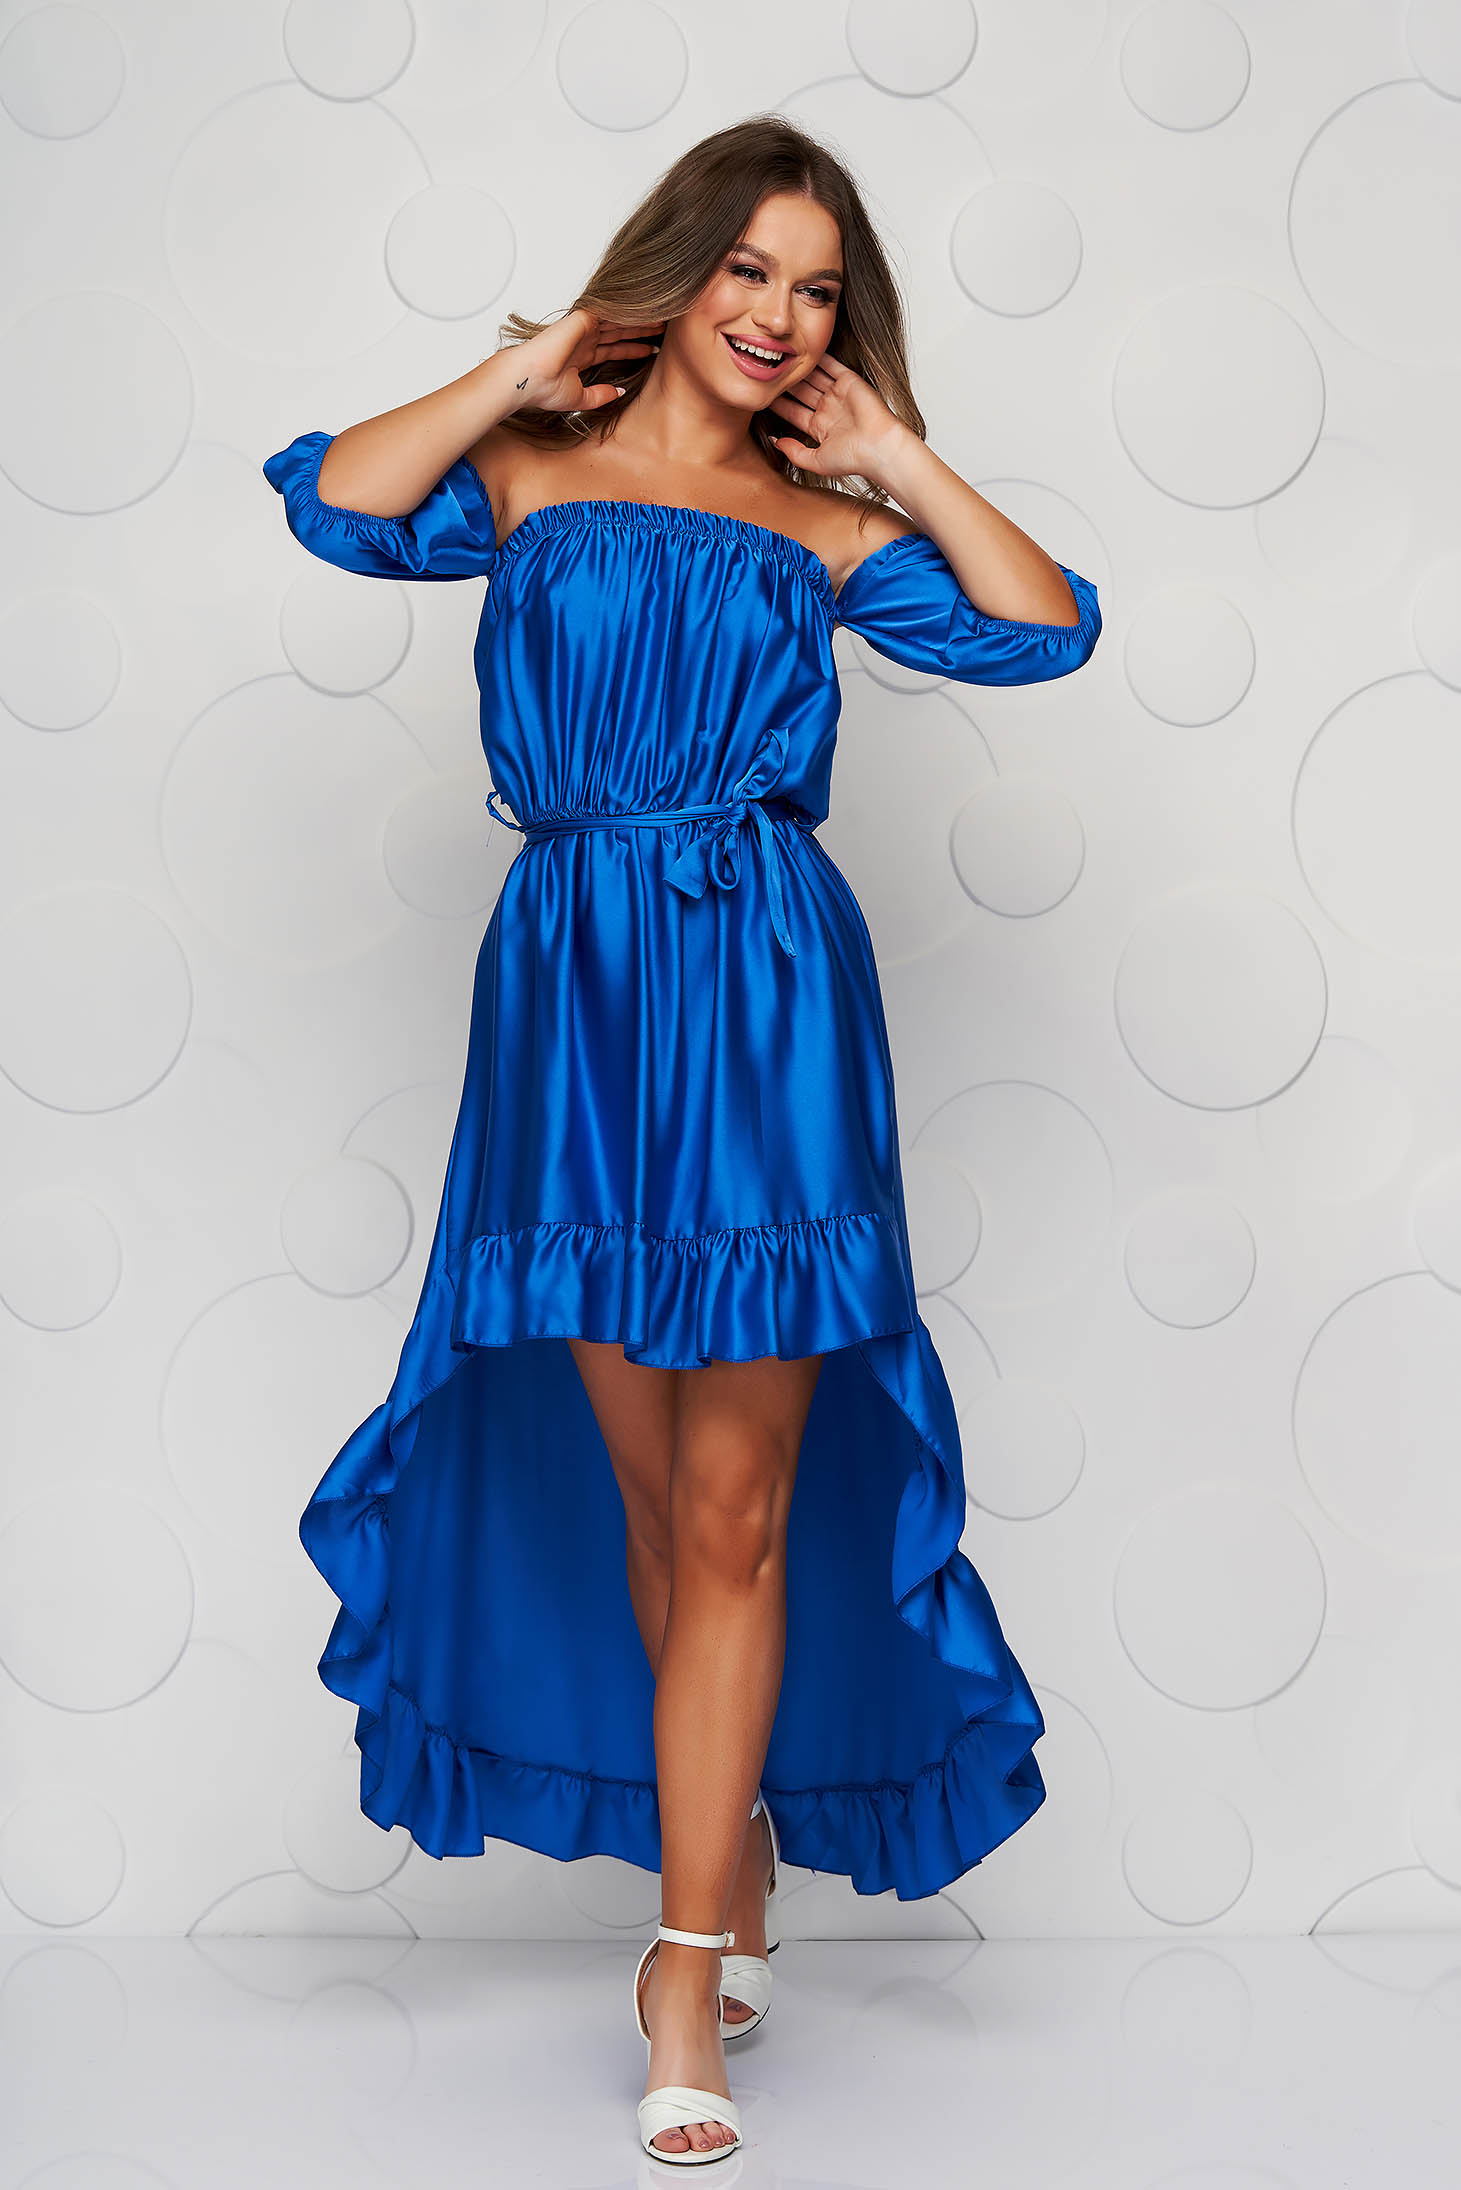 Blue dress from satin cloche with elastic waist asymmetrical with ruffle details on the shoulders